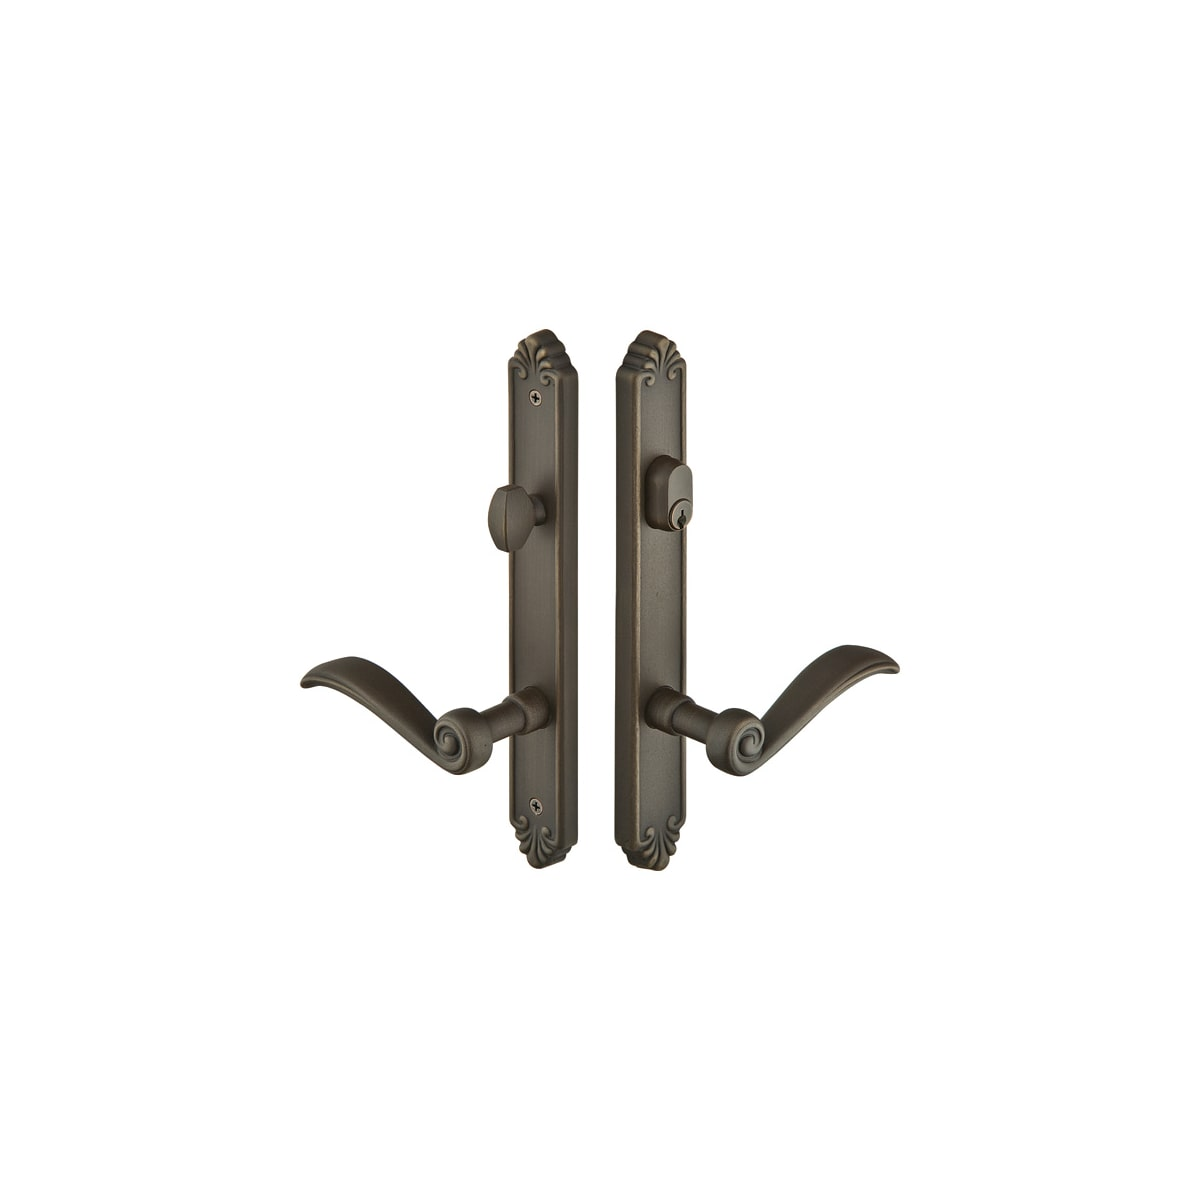 Emtek Lost Wax / Tuscany Bronze Door Configuration 3 Inactive Multi Point Narrow Trim Lever Set with American Cylinder Above Handle